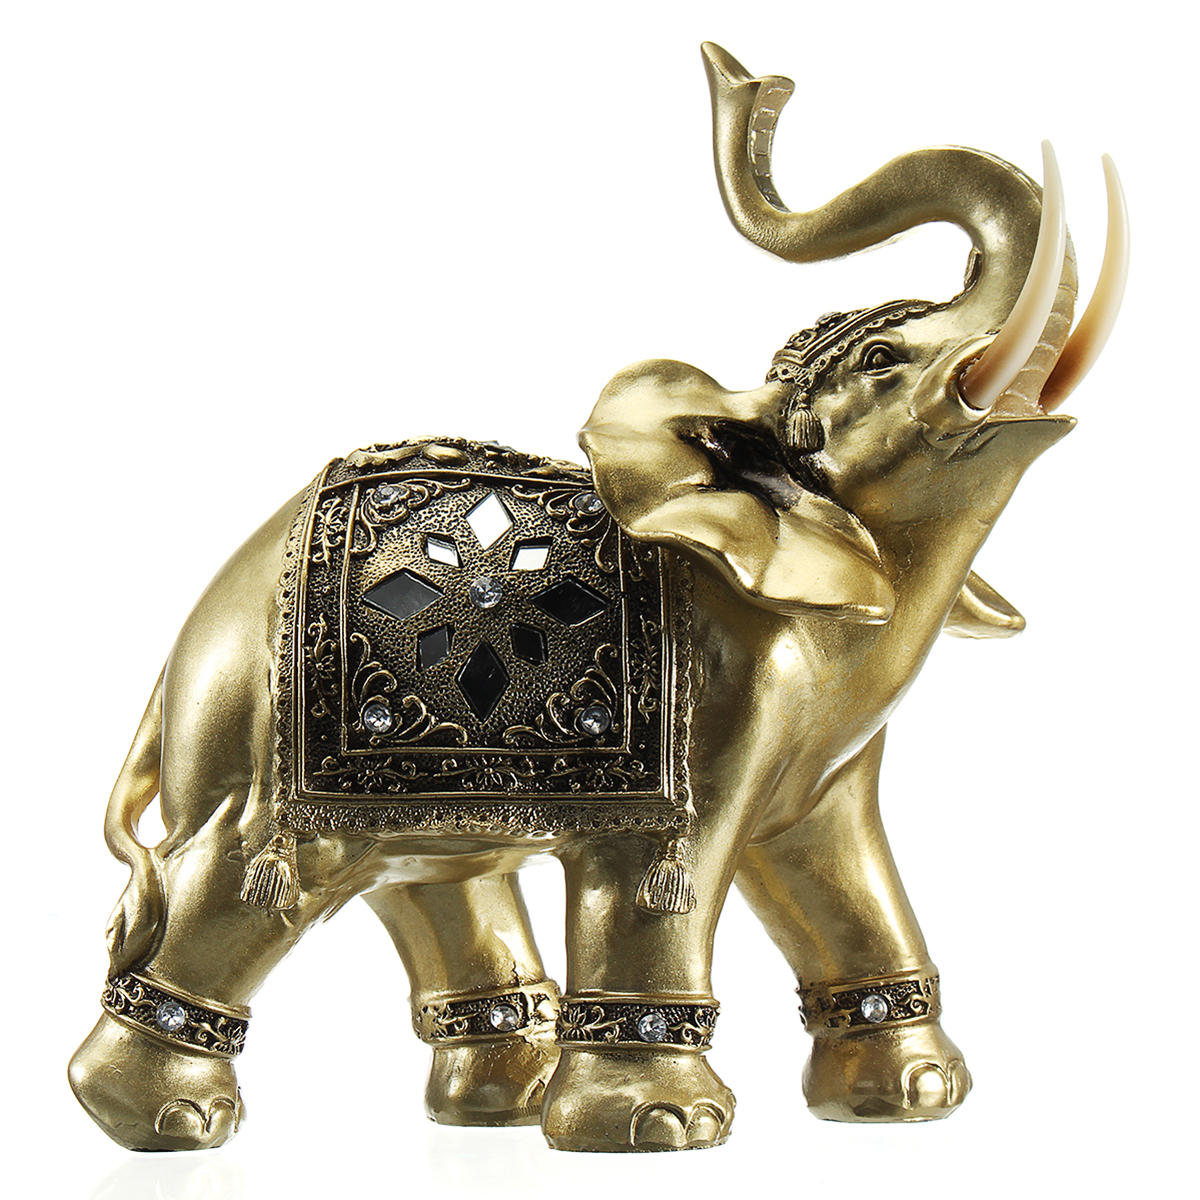 Lucky Charm Fengshui Mascot Golden Elephant Resin Mini Statue Home Desk Ornaments Gifts Home Decorations - 3